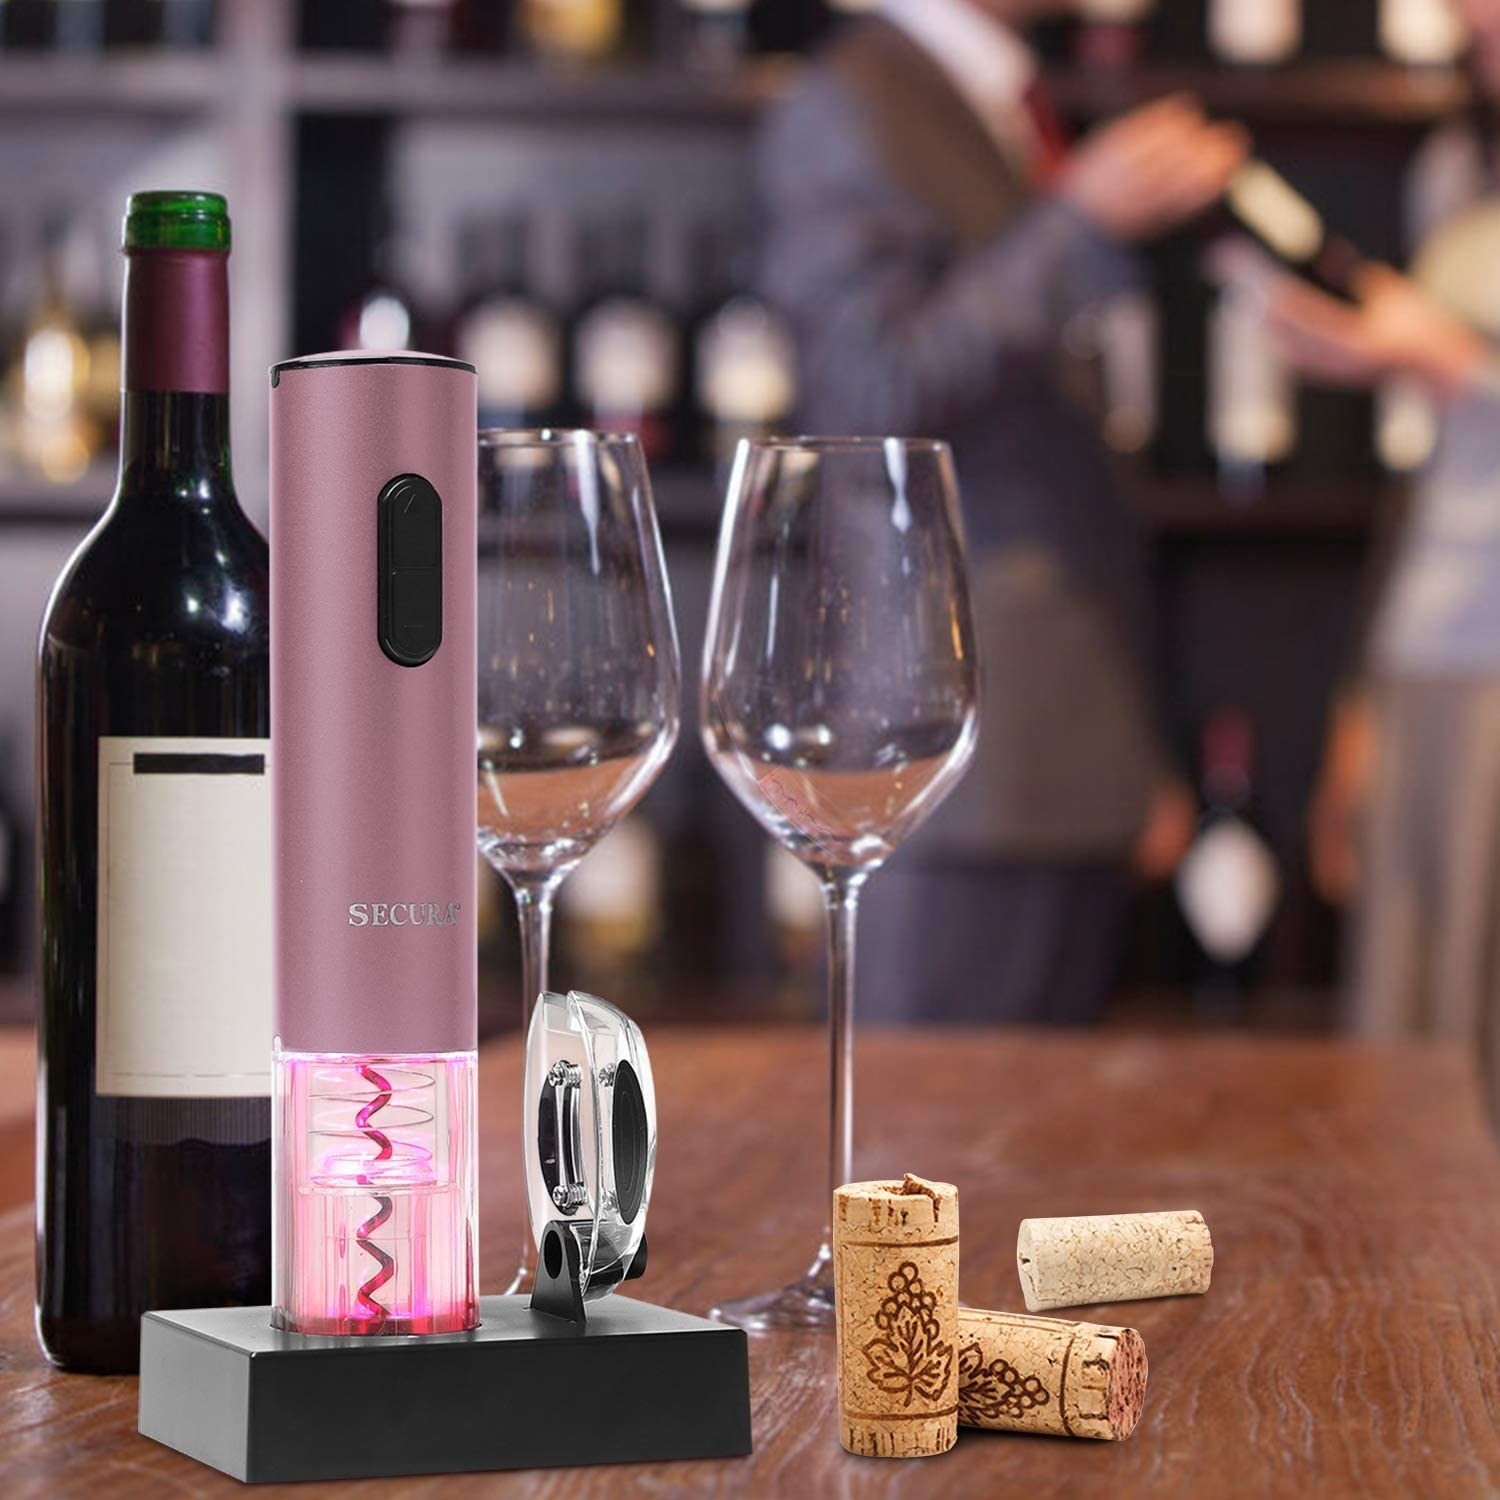 The electic wine opener on a stand next to the foil cutting device